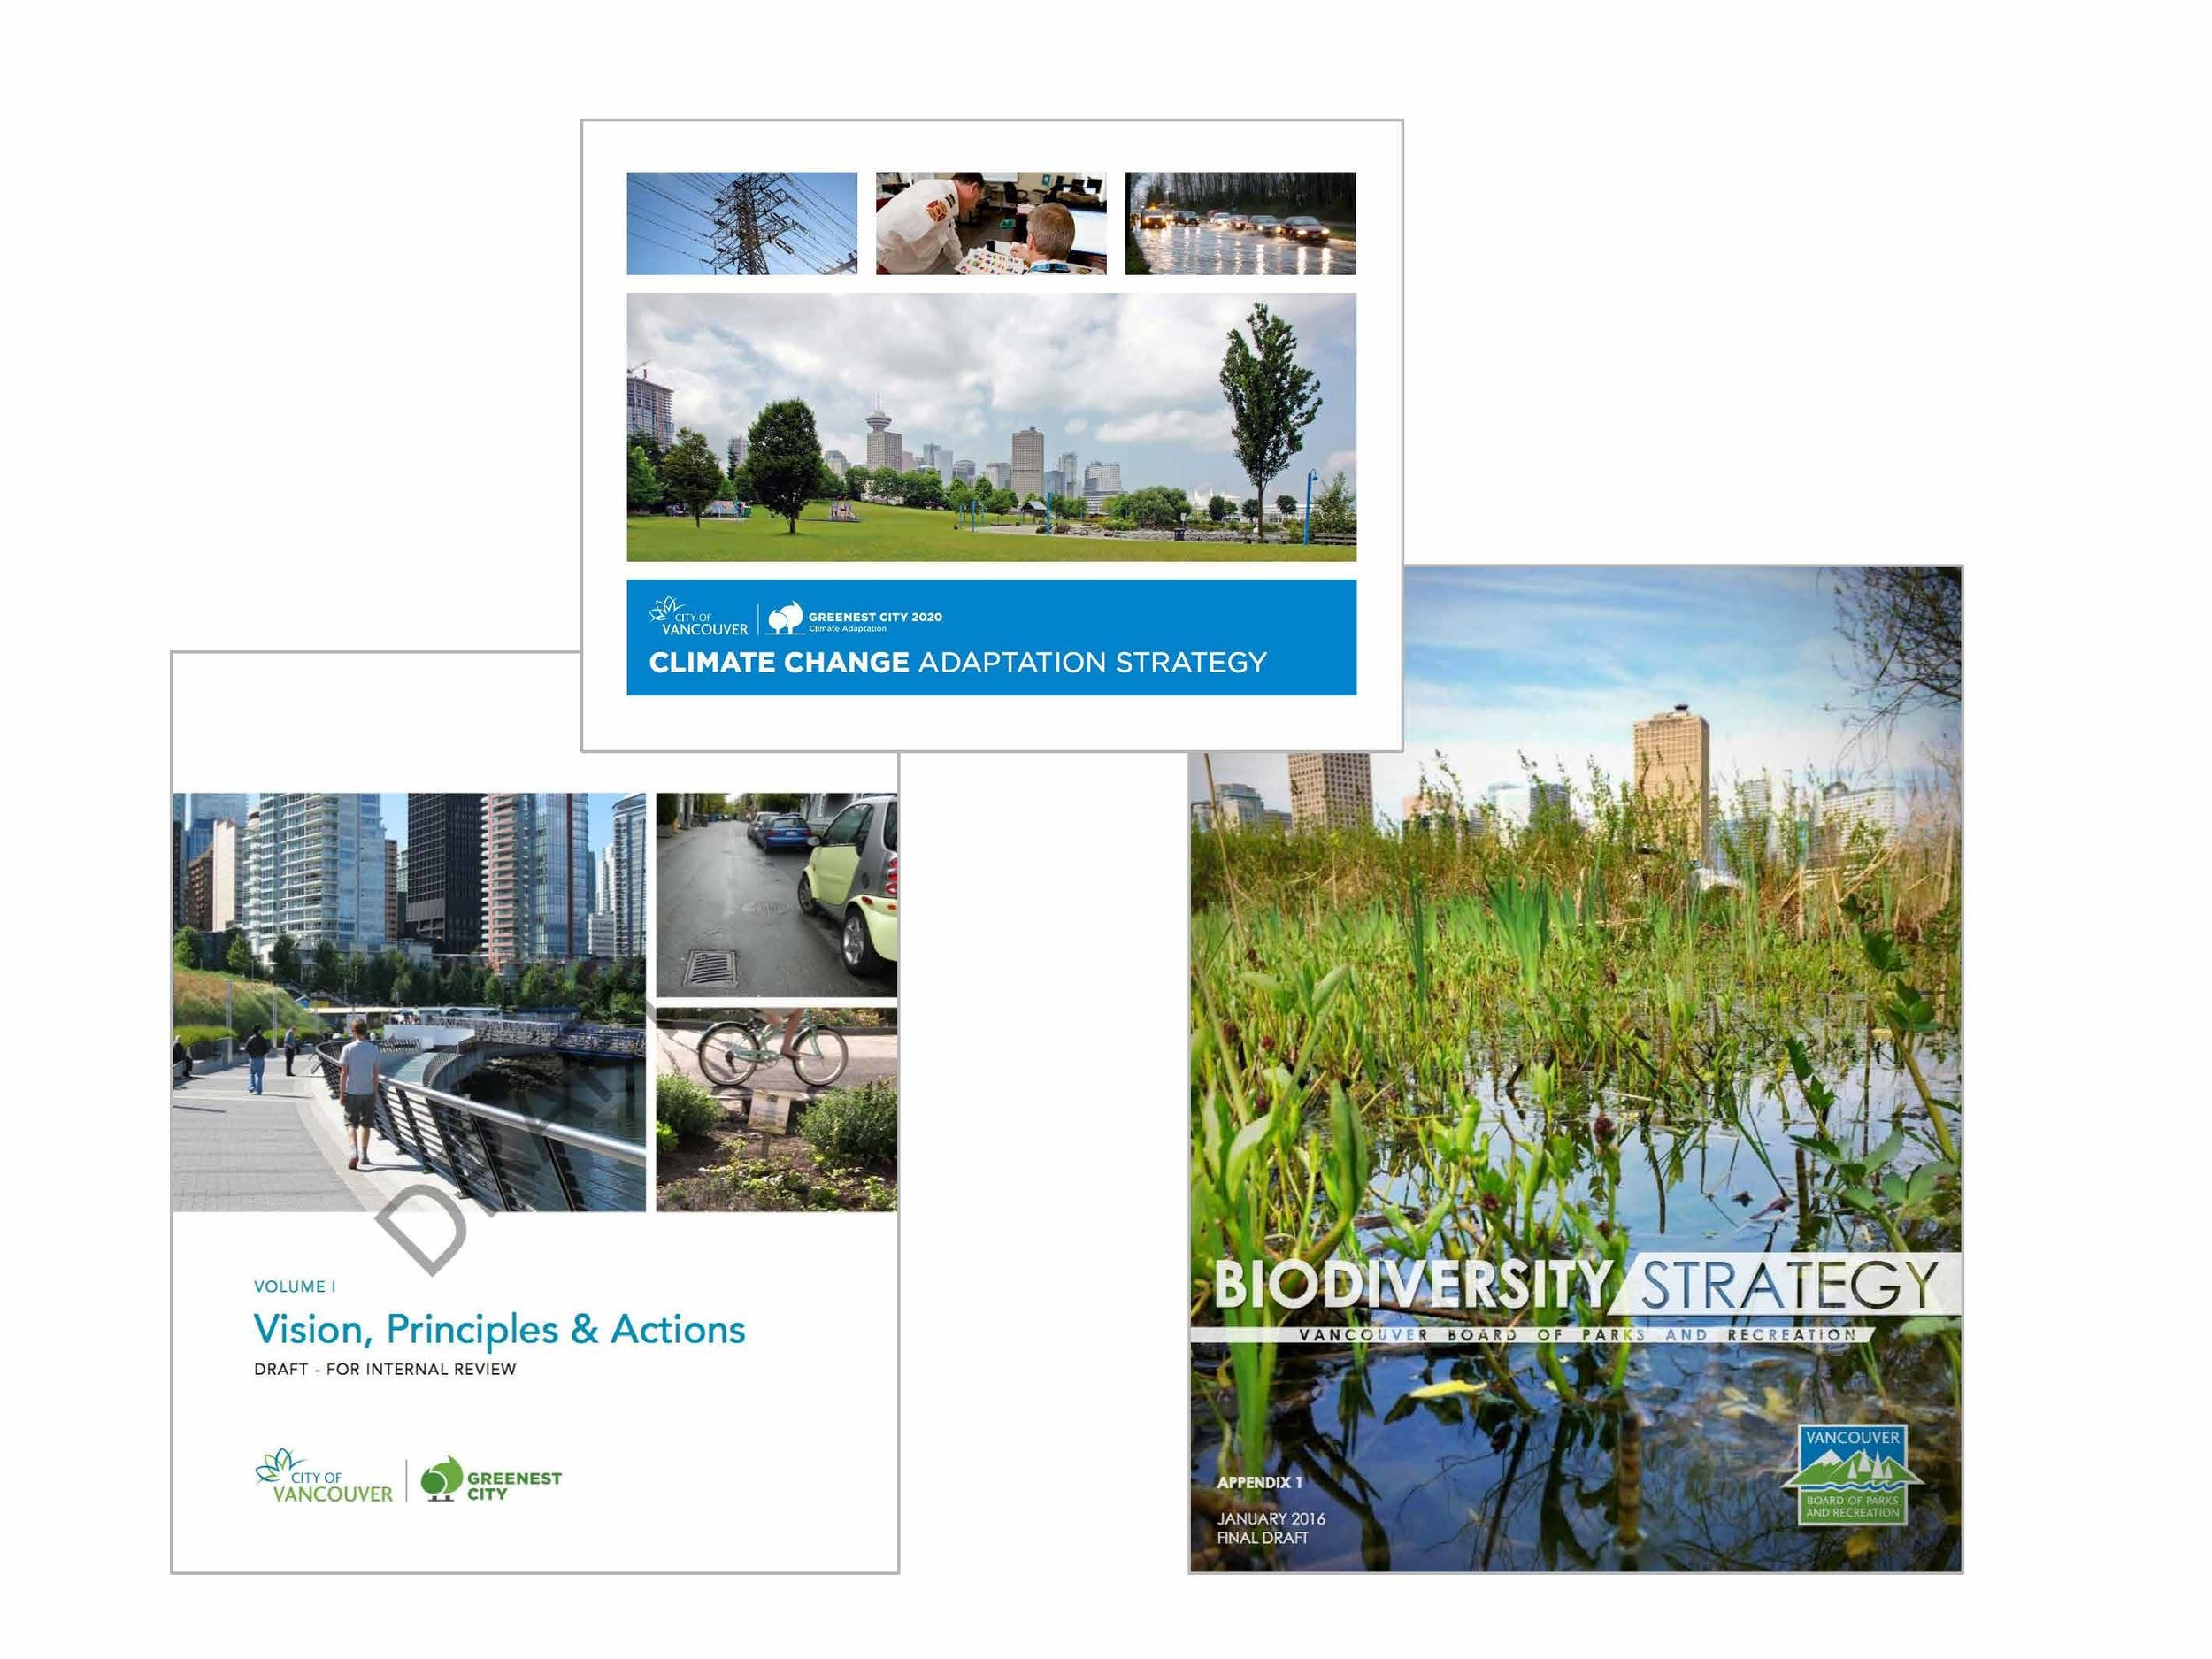 Until recently there hasn't been an overarching City policy to guide projects like the Rainway, however this might be changing with the IRMP, Climate change adaptation strategy, and Biodiversity Strategy